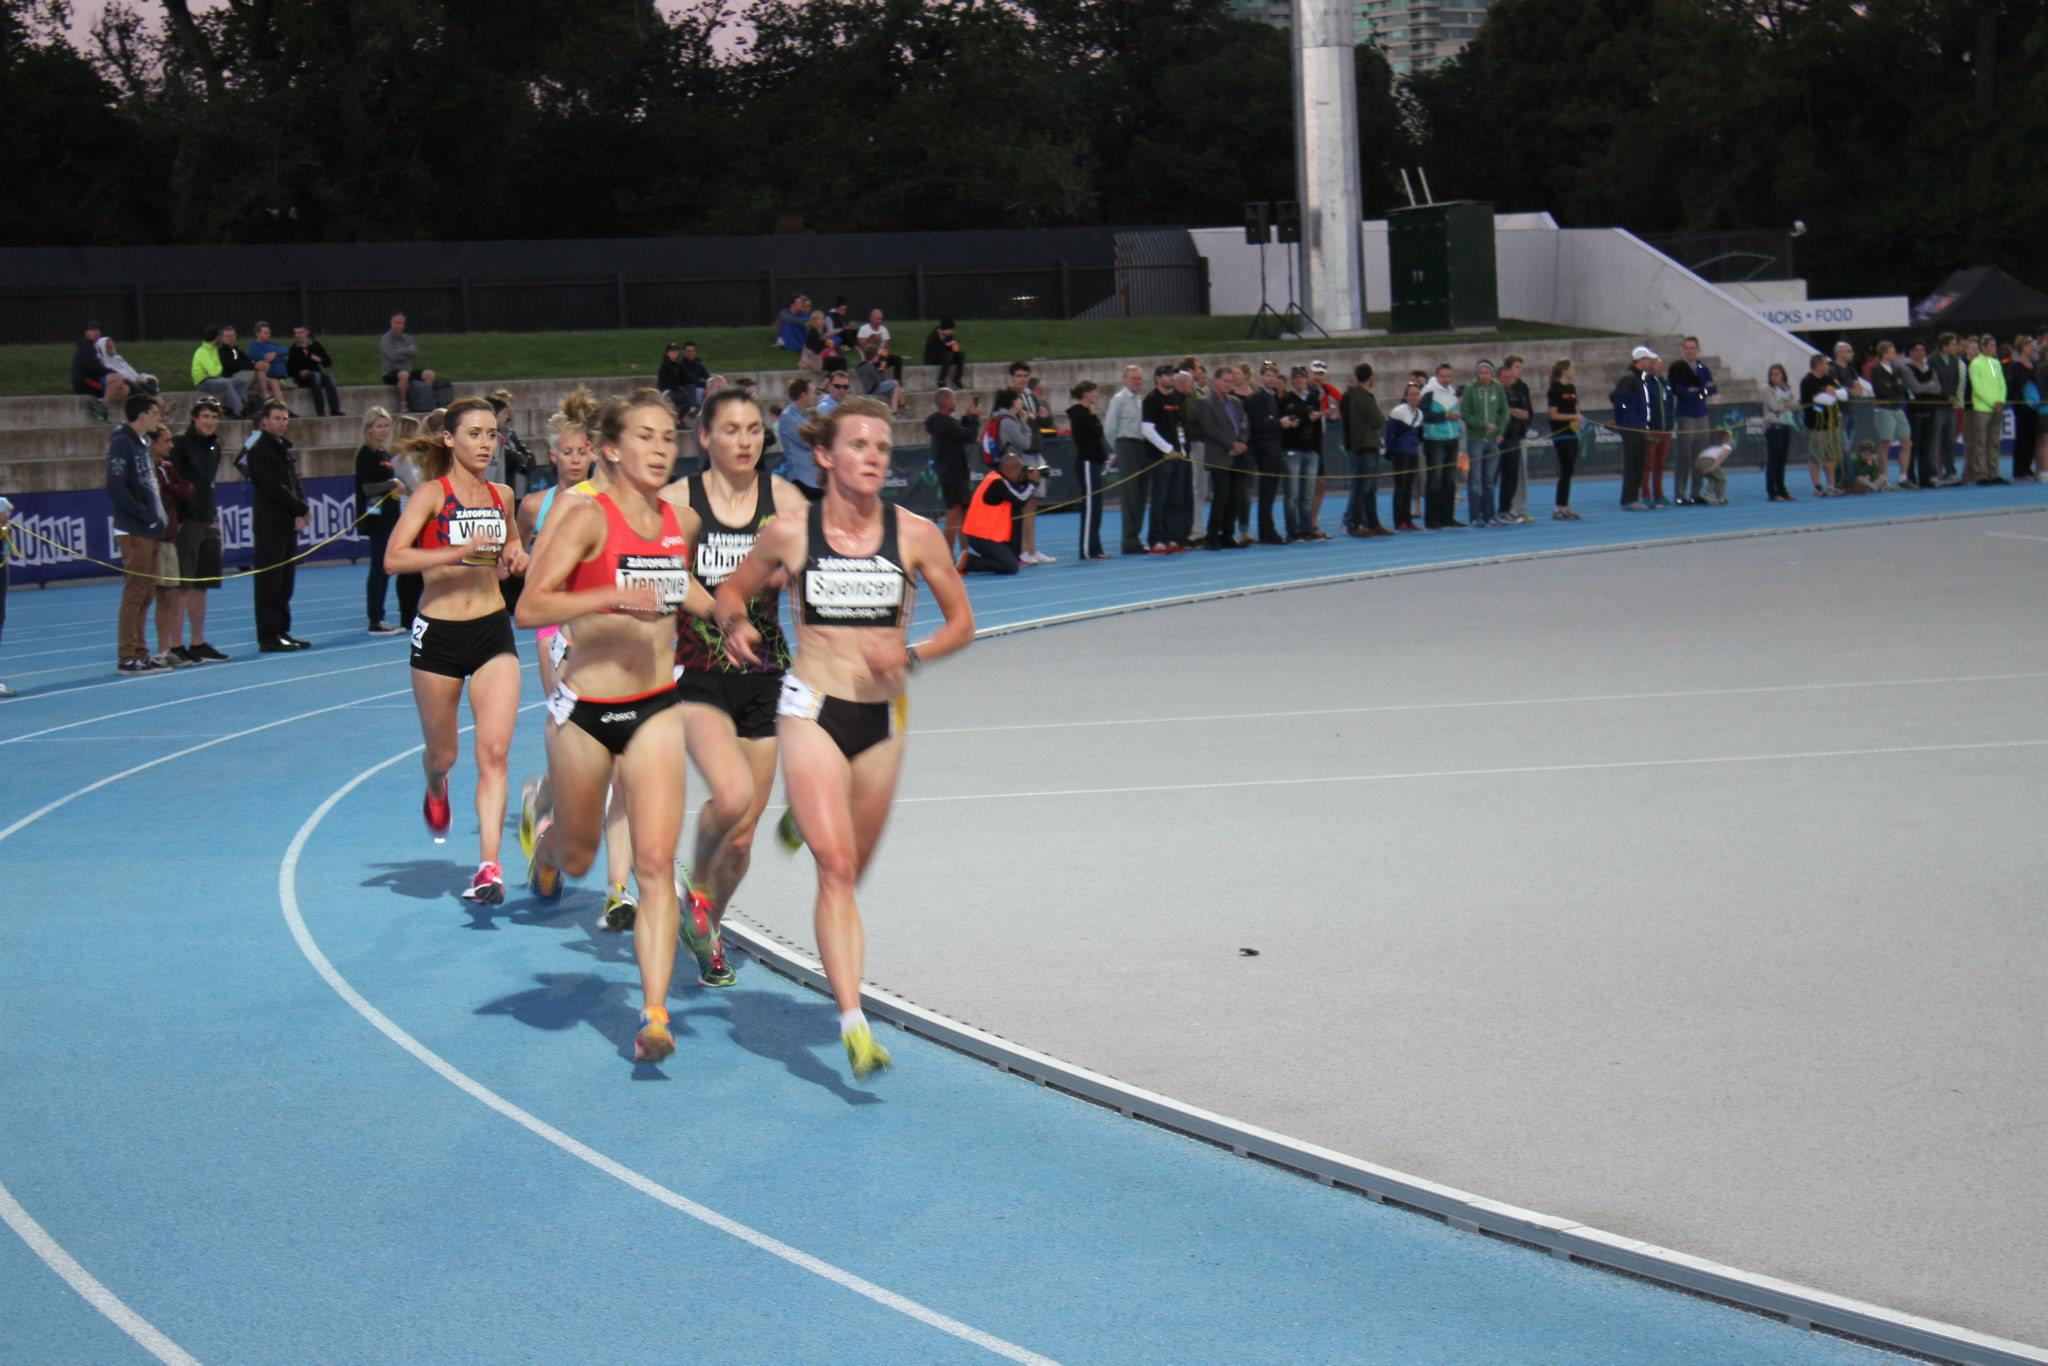 Chapple 2013 Womens Zatopek 10 Review - Nikki Chapple's Night 2013 Womens Zatopek 10 Review - Nikki Chapple's Night Chapple